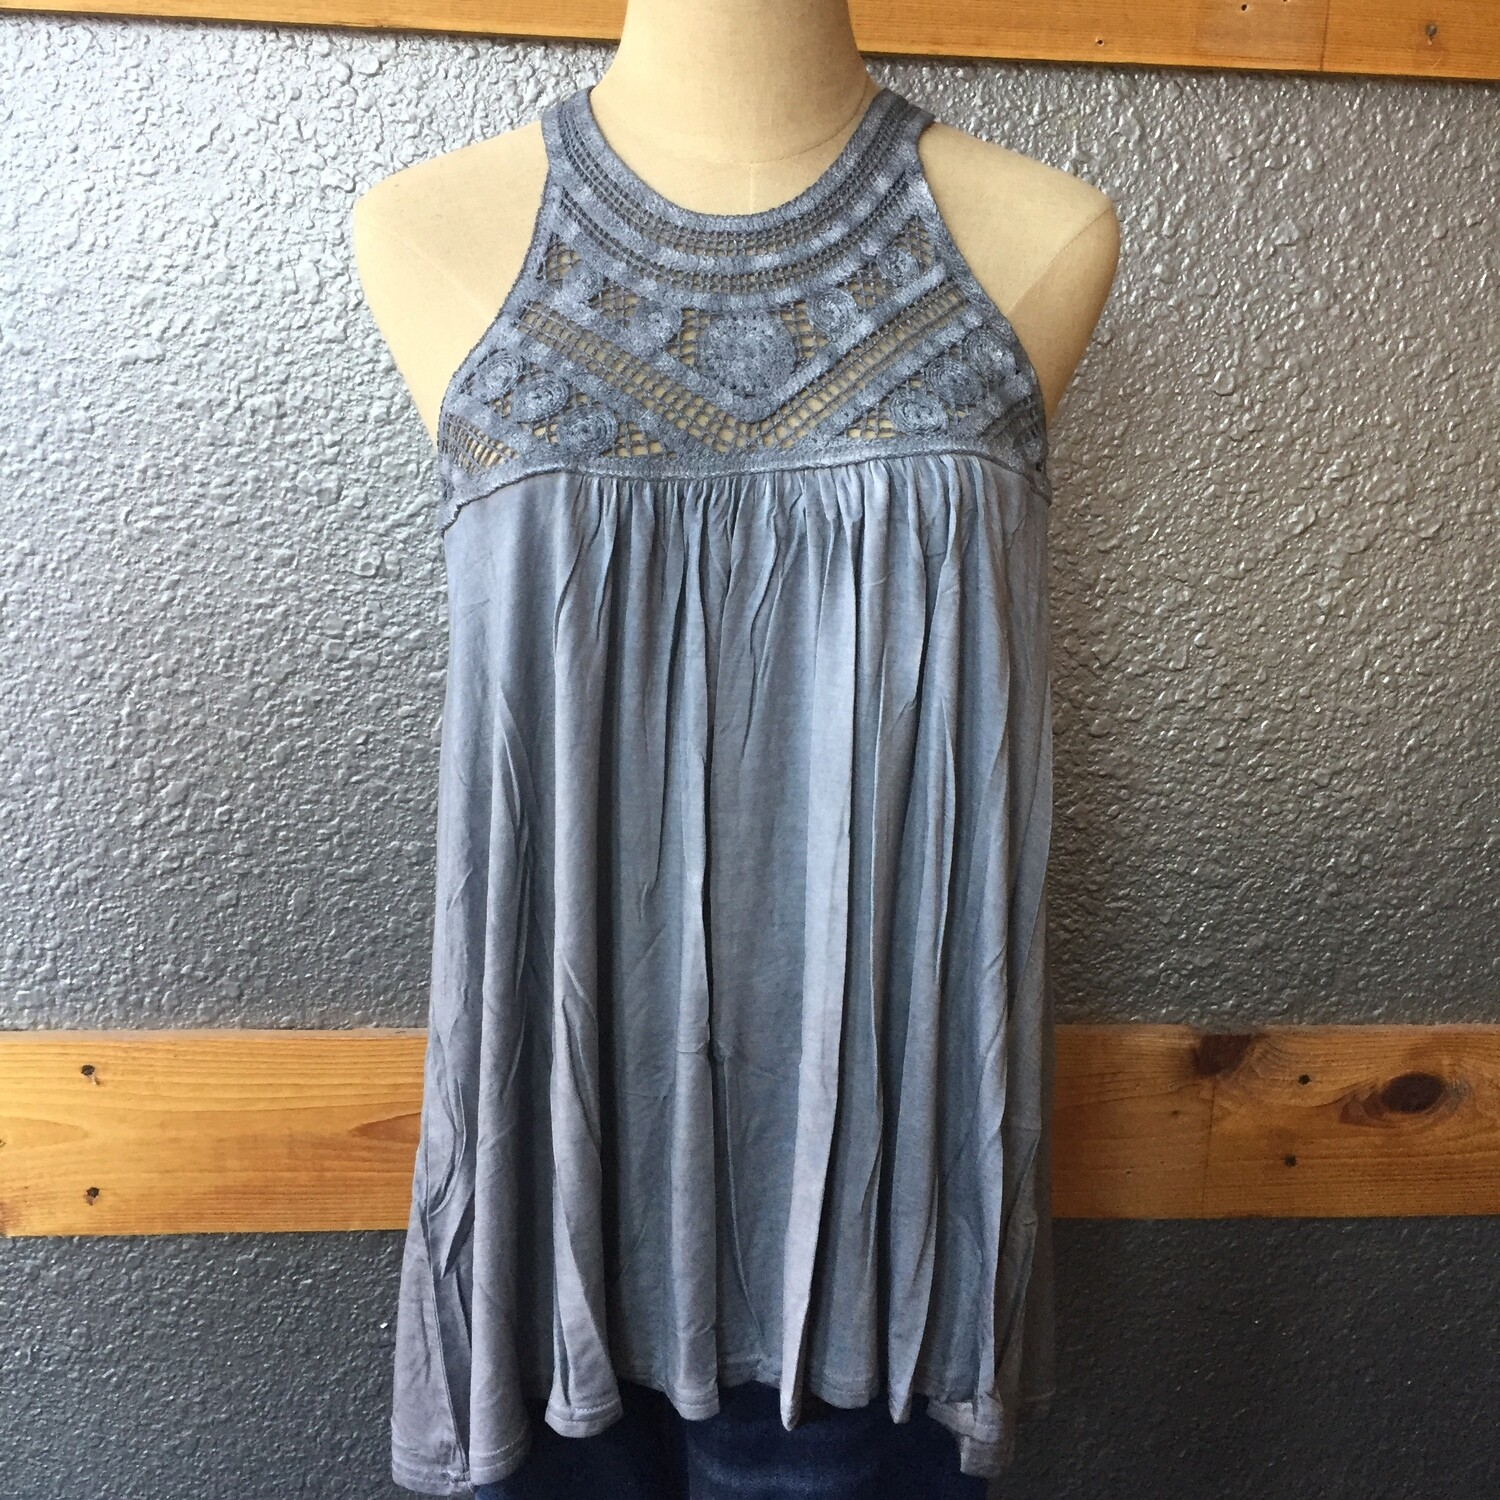 AAC-Crochet Detail Sleeveless Top by POL - Gray